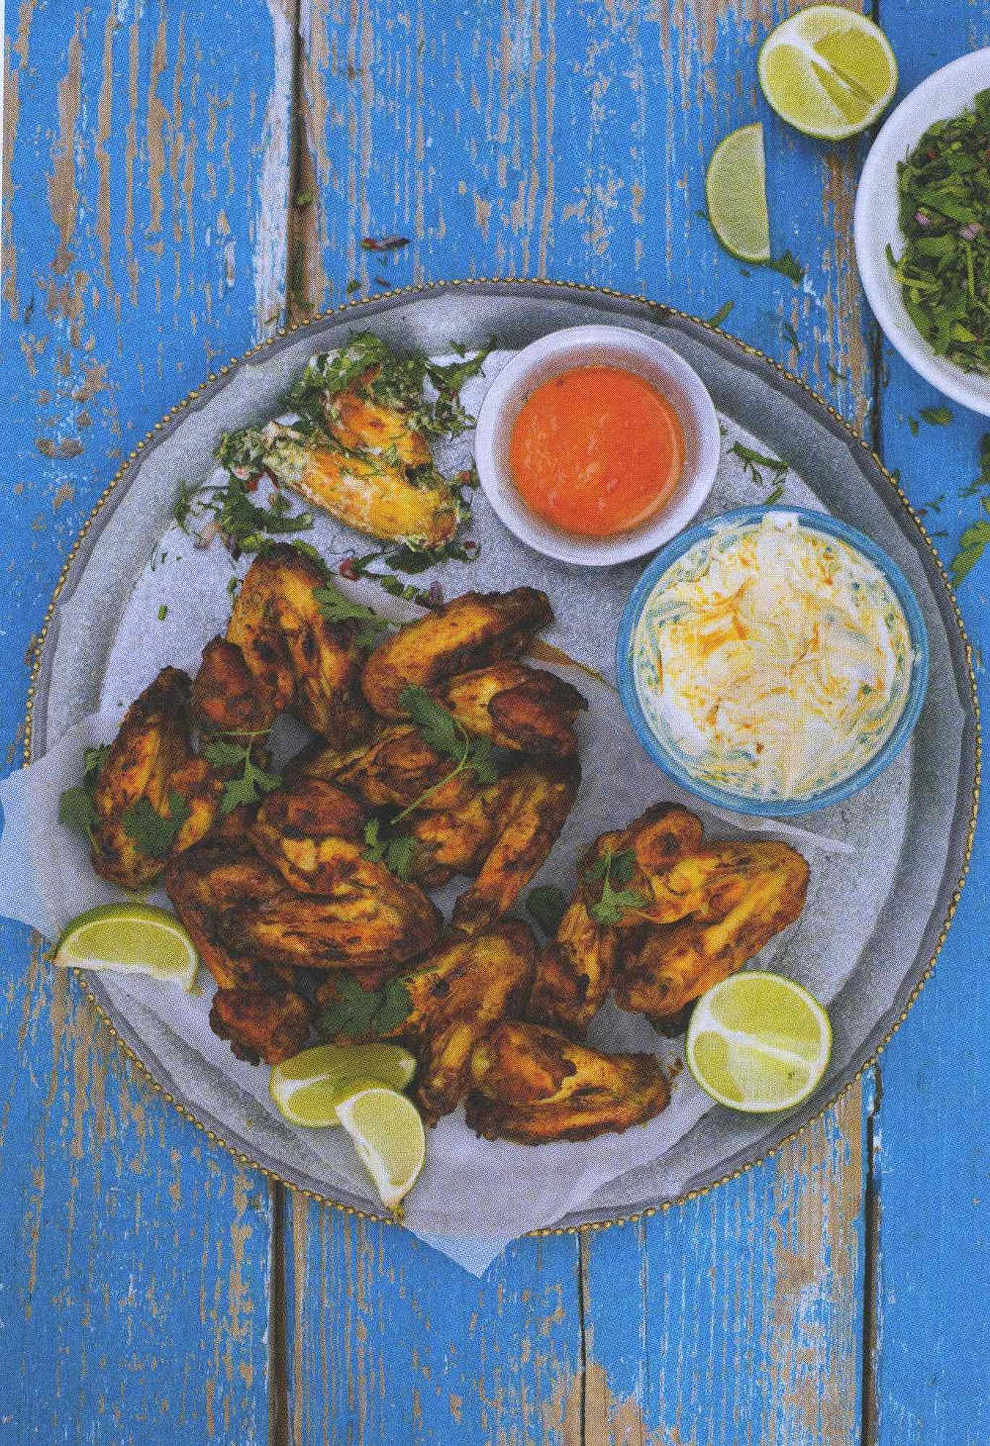 Roast chicken wings with dipping sauces and herbs